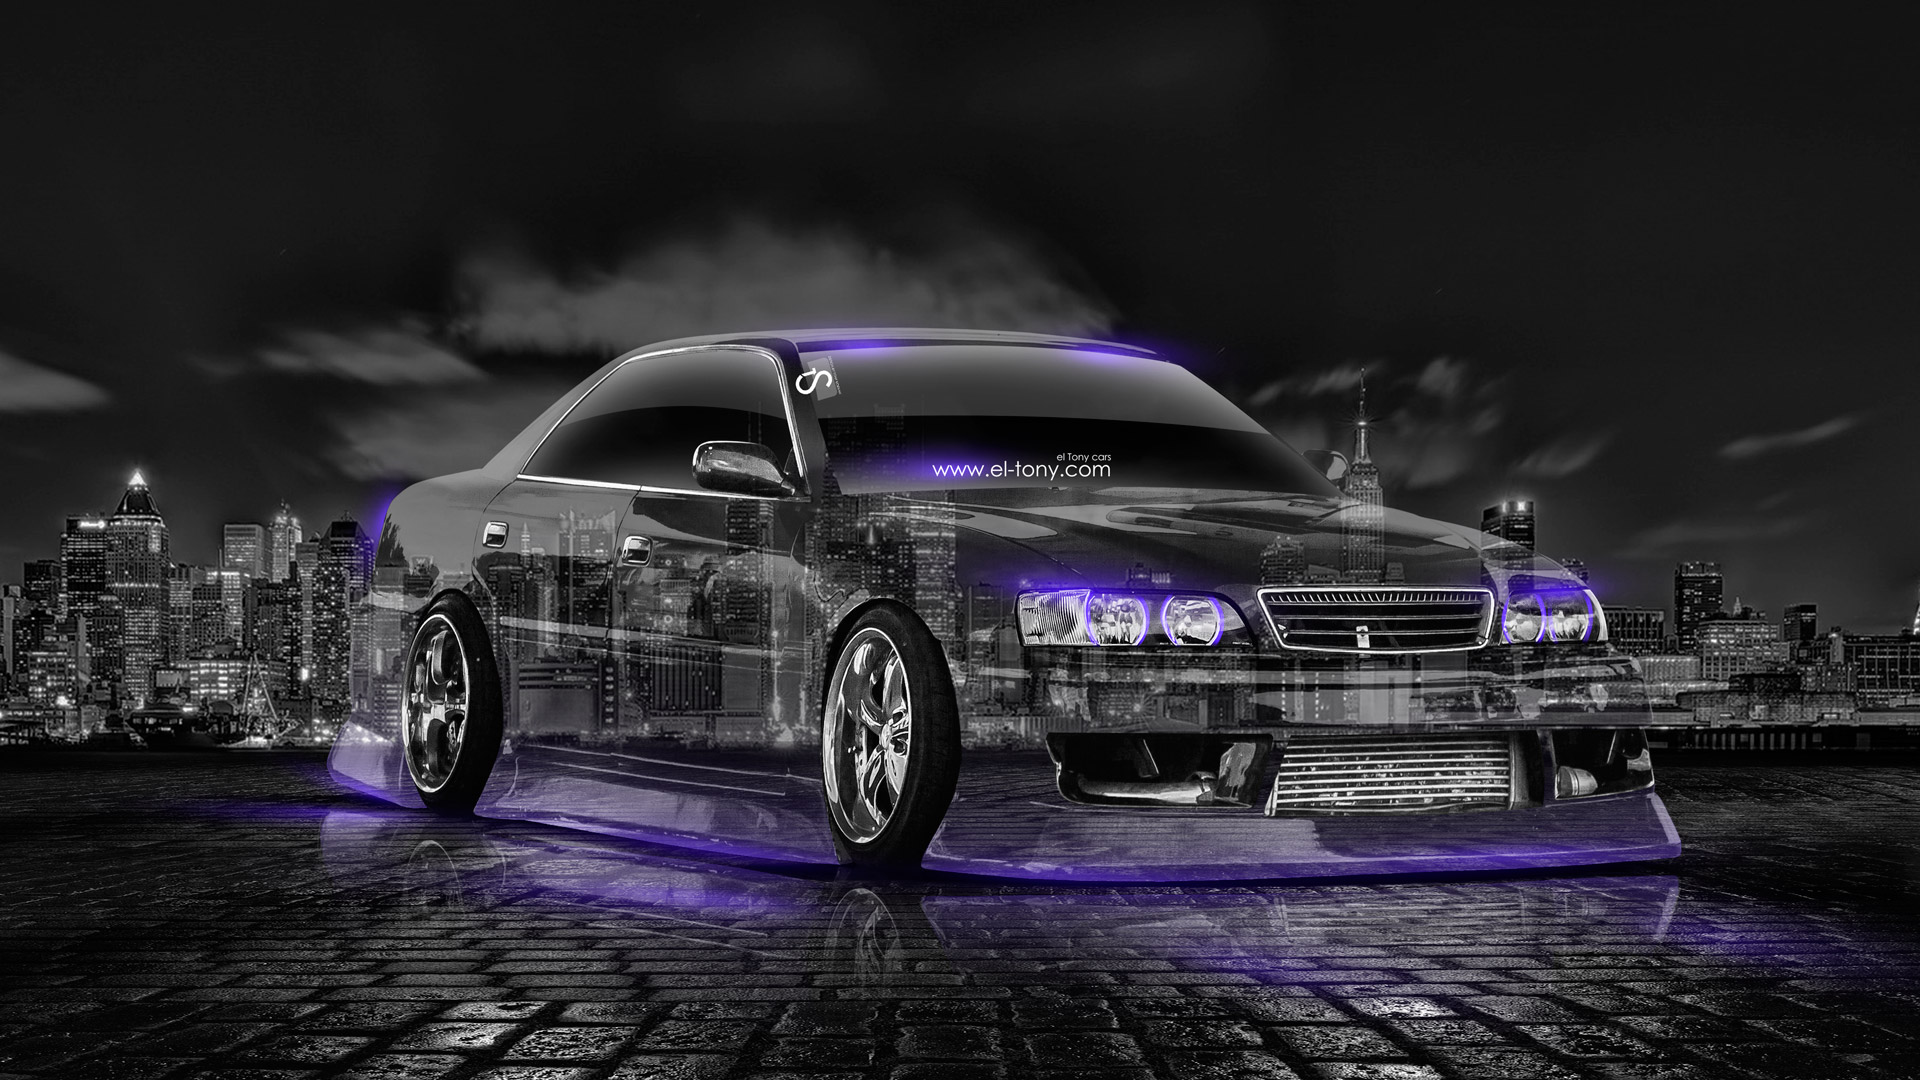 ... Toyota Chaser JZX100 JDM Crystal City Car 2014